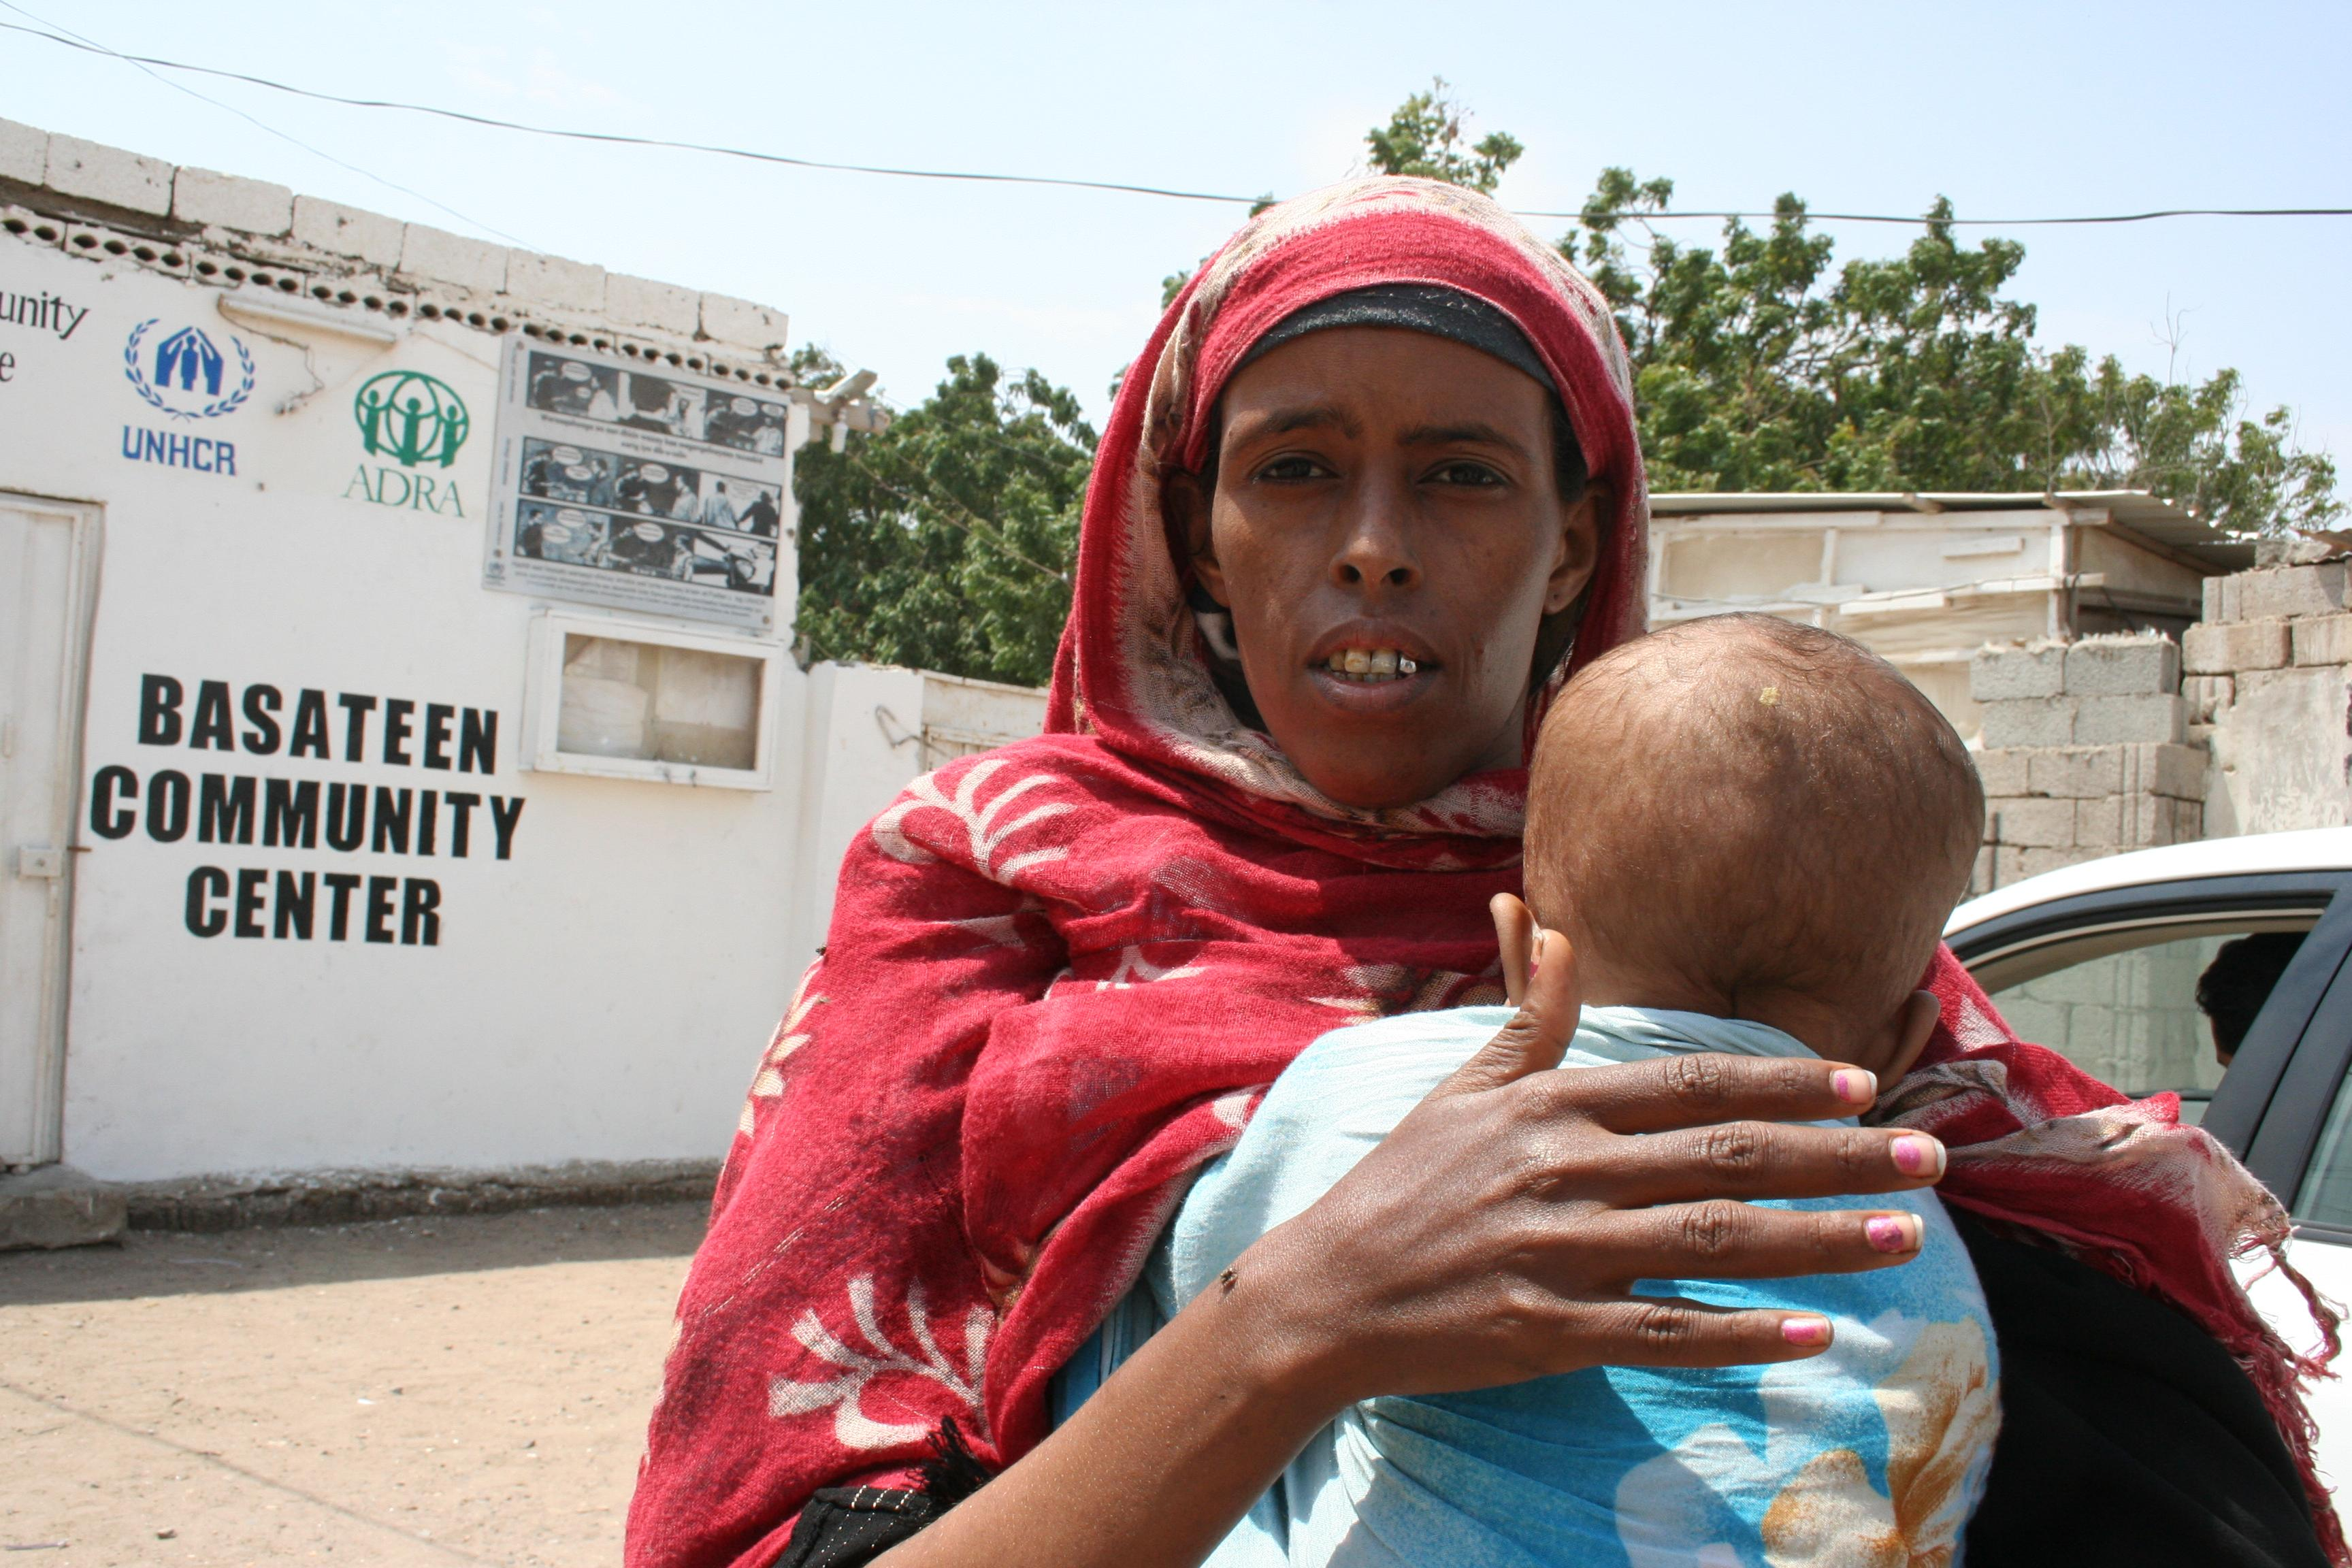 Somali women with baby in Basateen